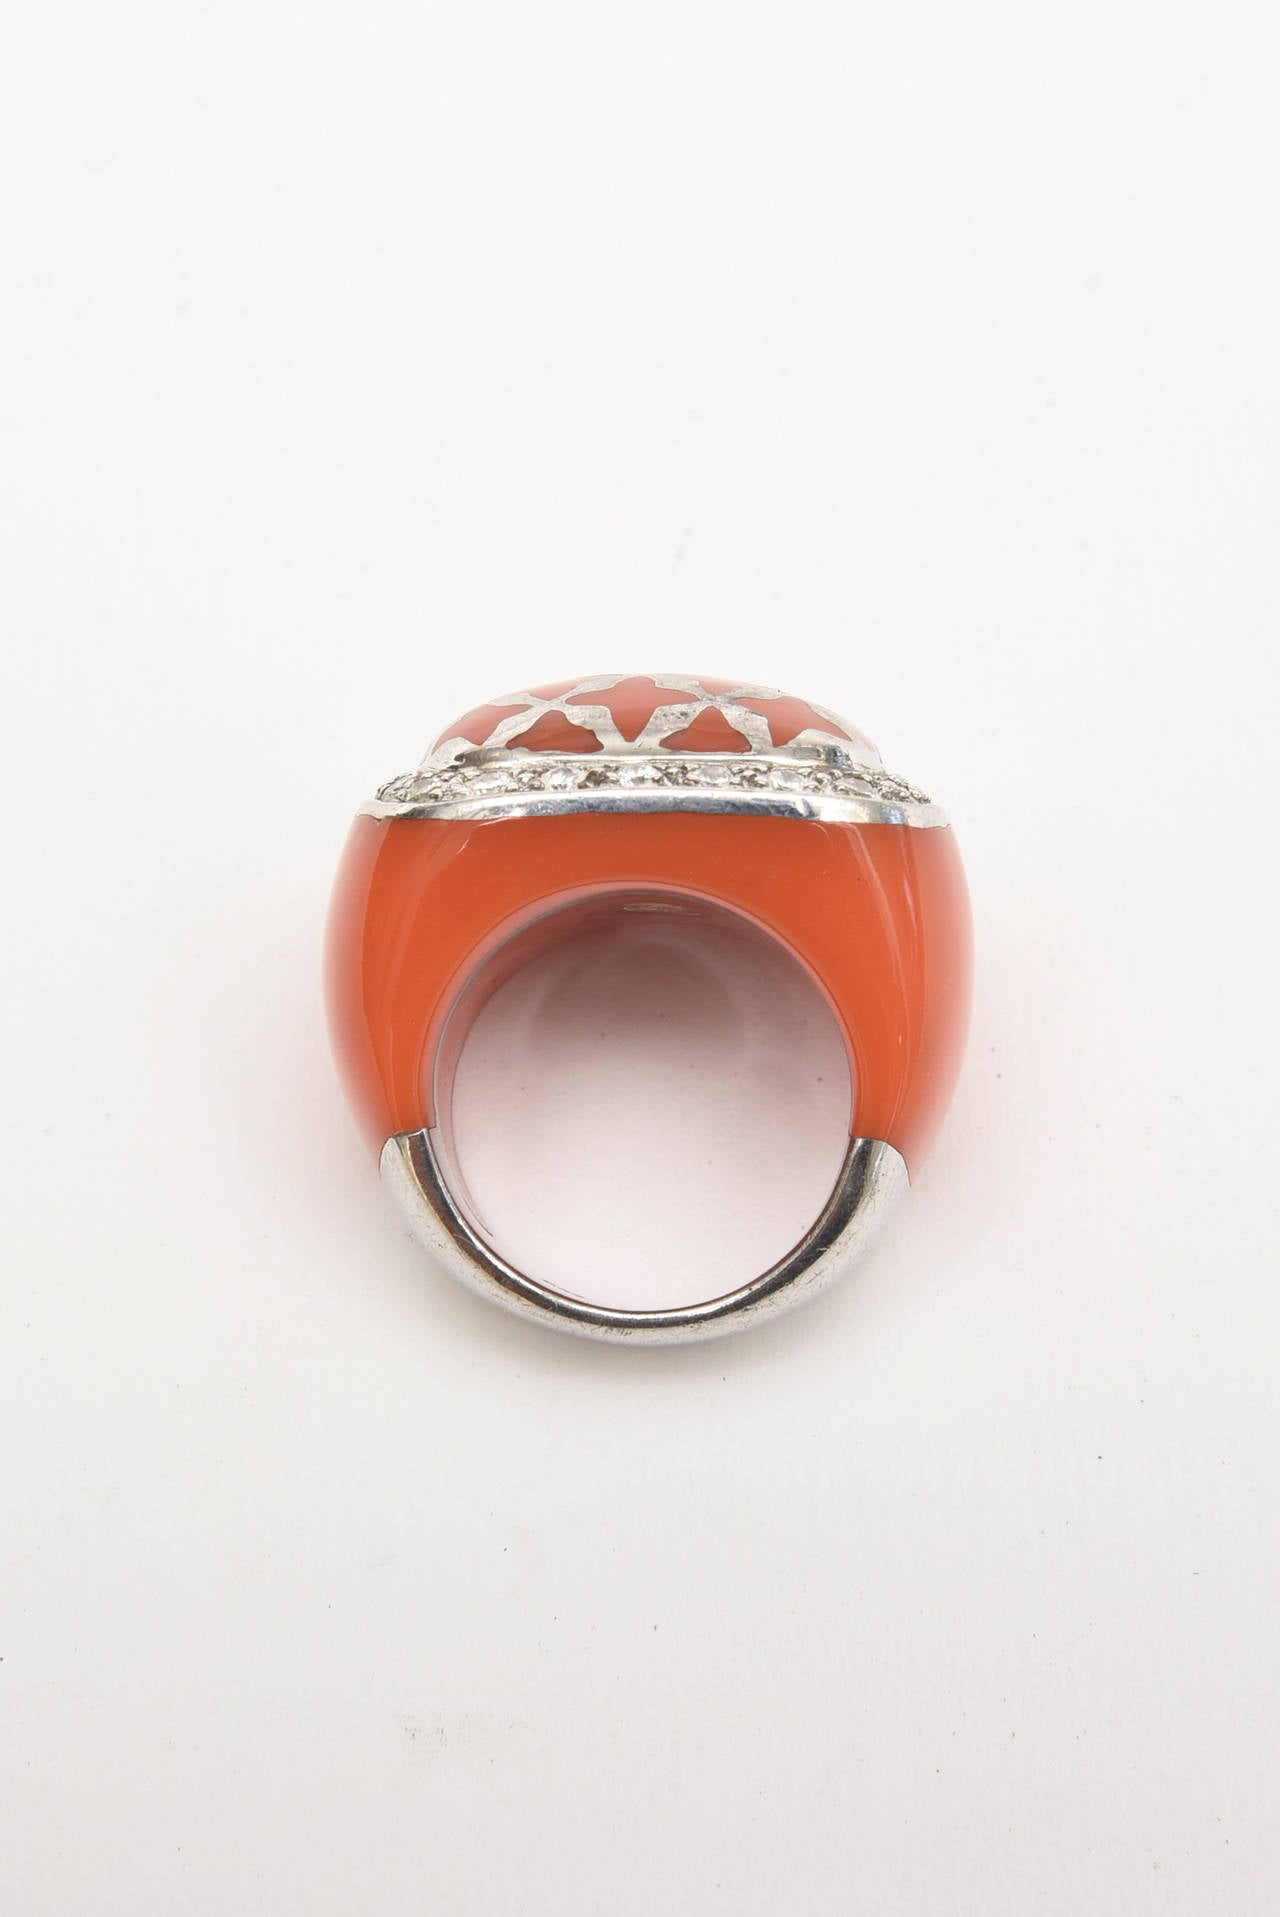 Modern  Angelique de Paris Sterling Silver, Rhinestone & Resin Dome Ring For Sale